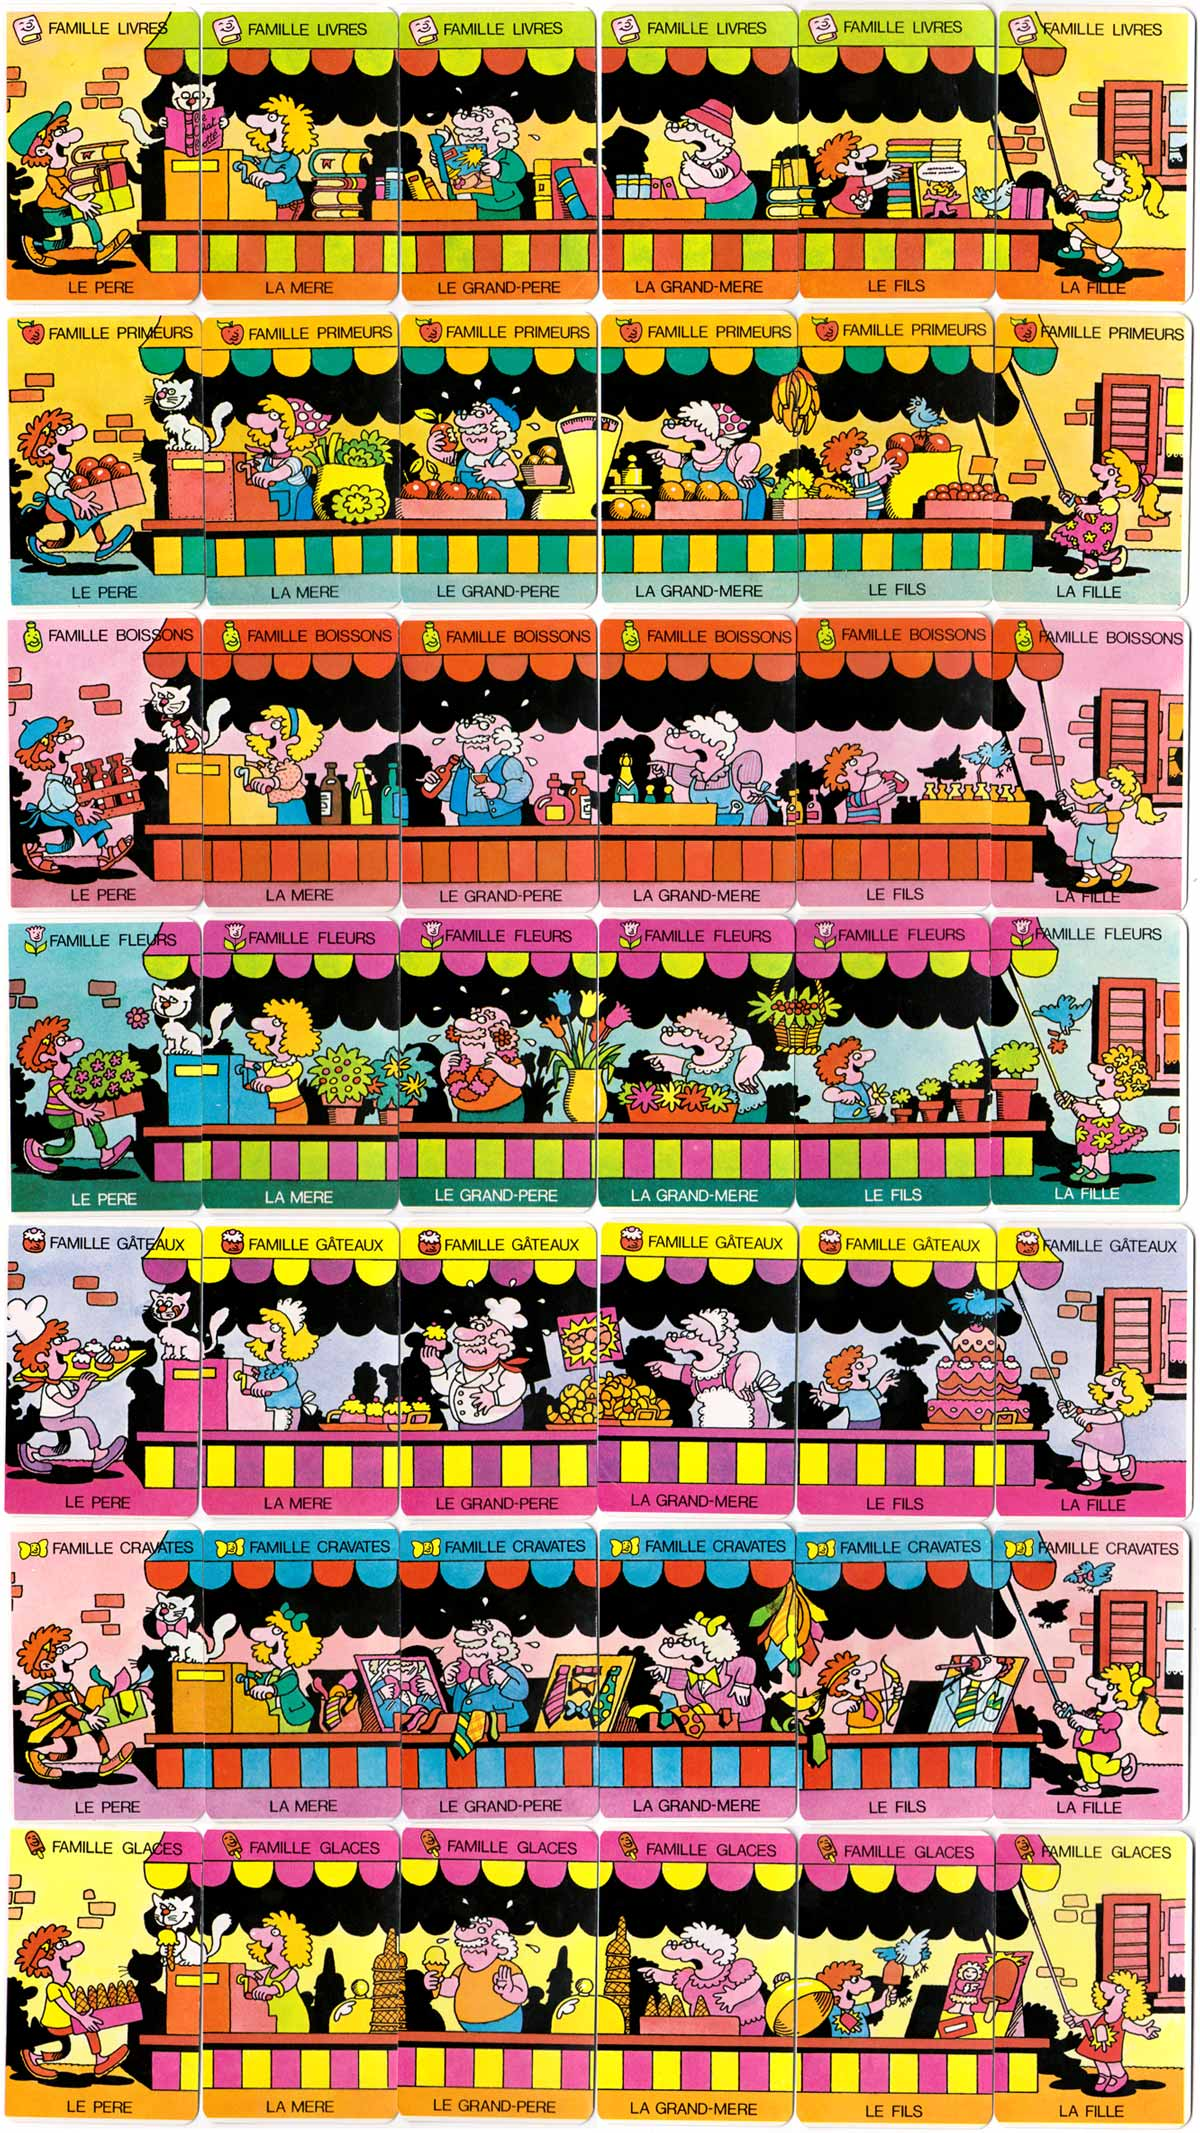 """Marché 7 Familles"" Happy Families card game published by France Cartes, c.1985"